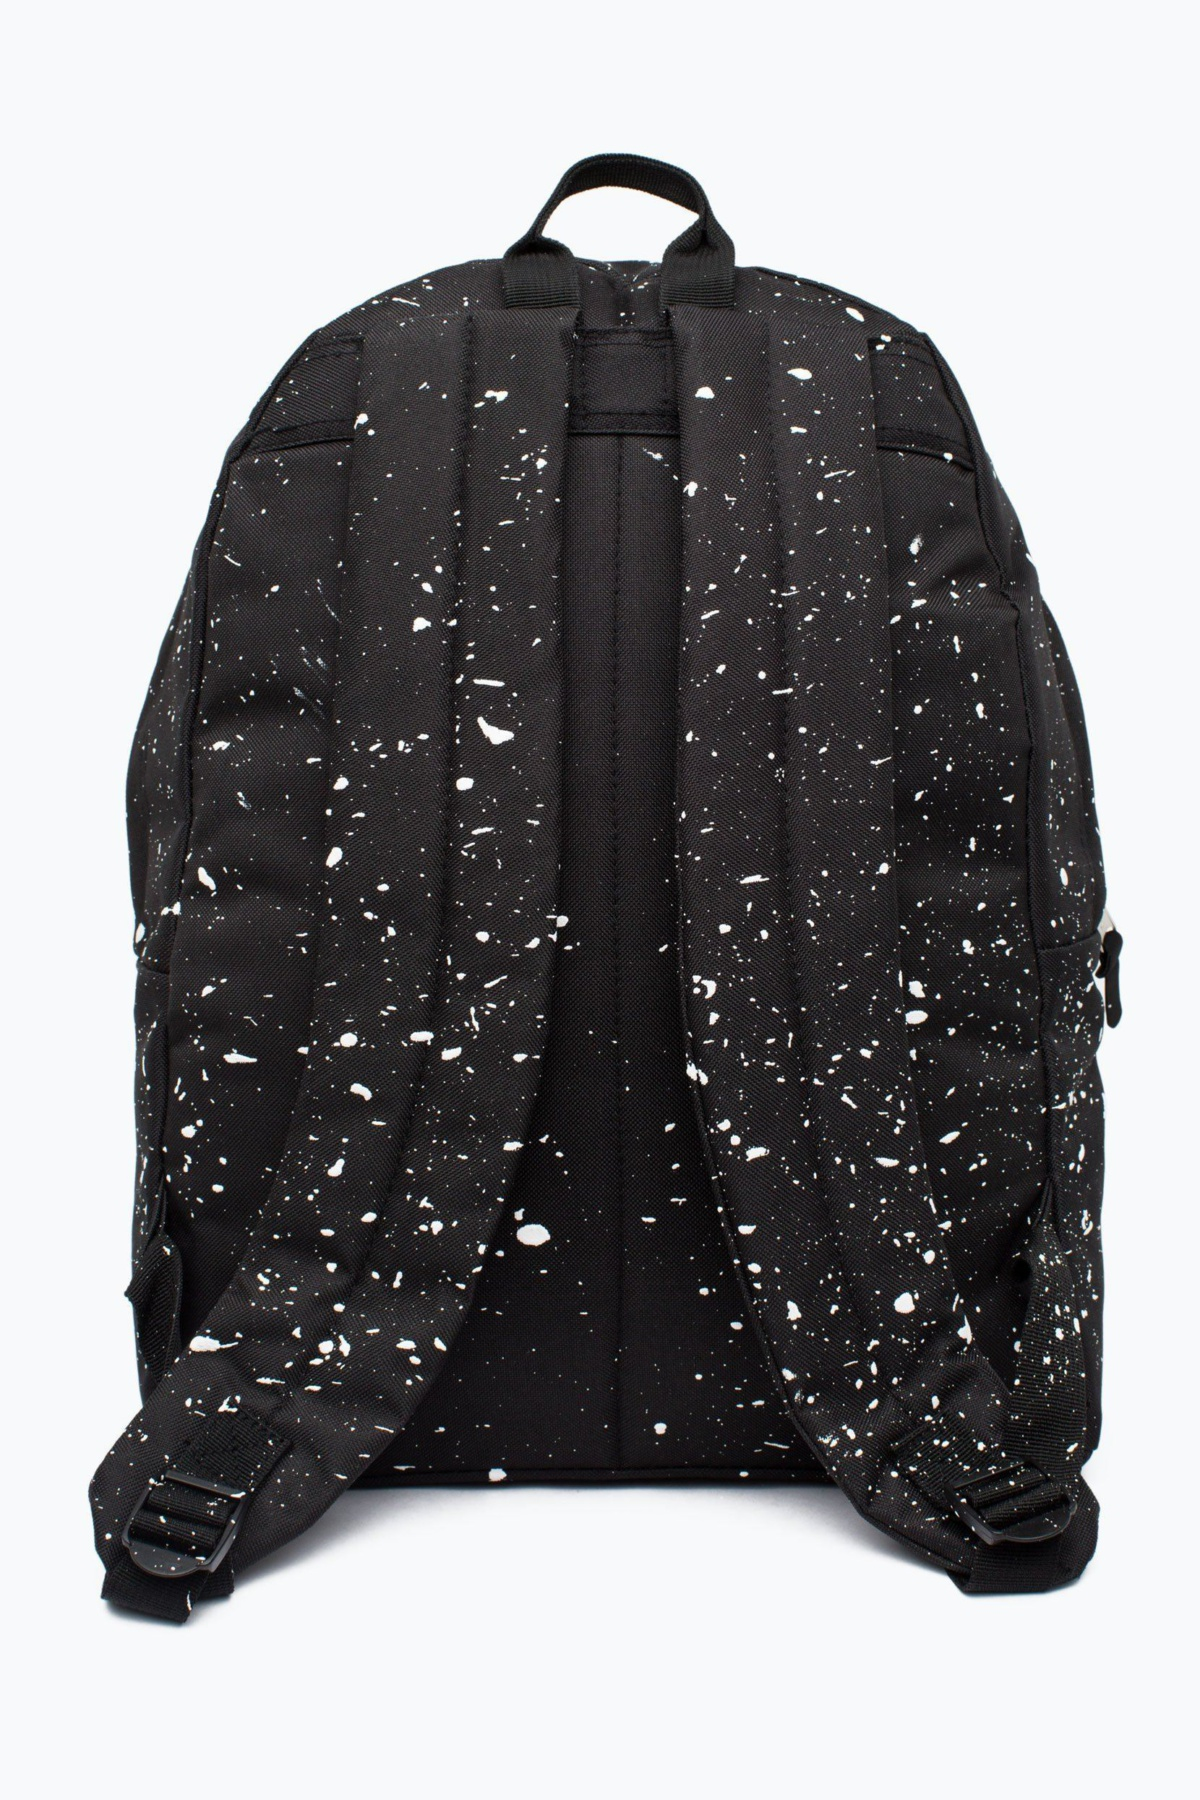 HYPE Black With White Speckle Backpack